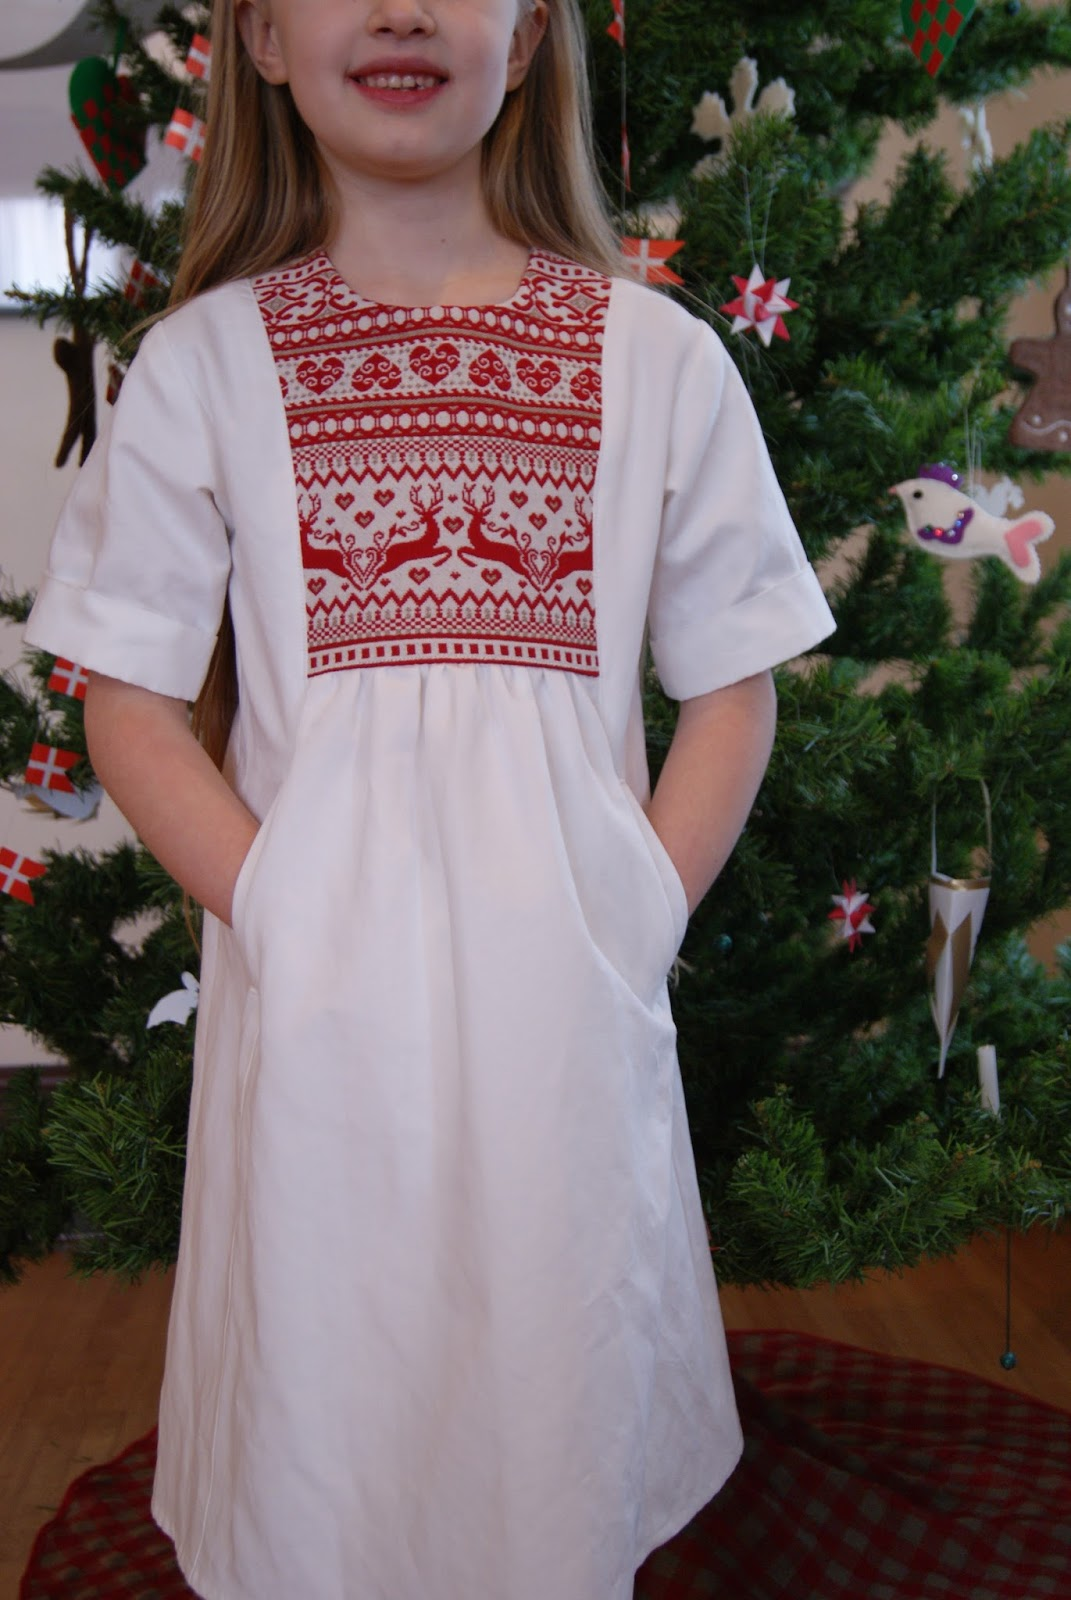 Scandinavian Christmas dress by nest full of eggs